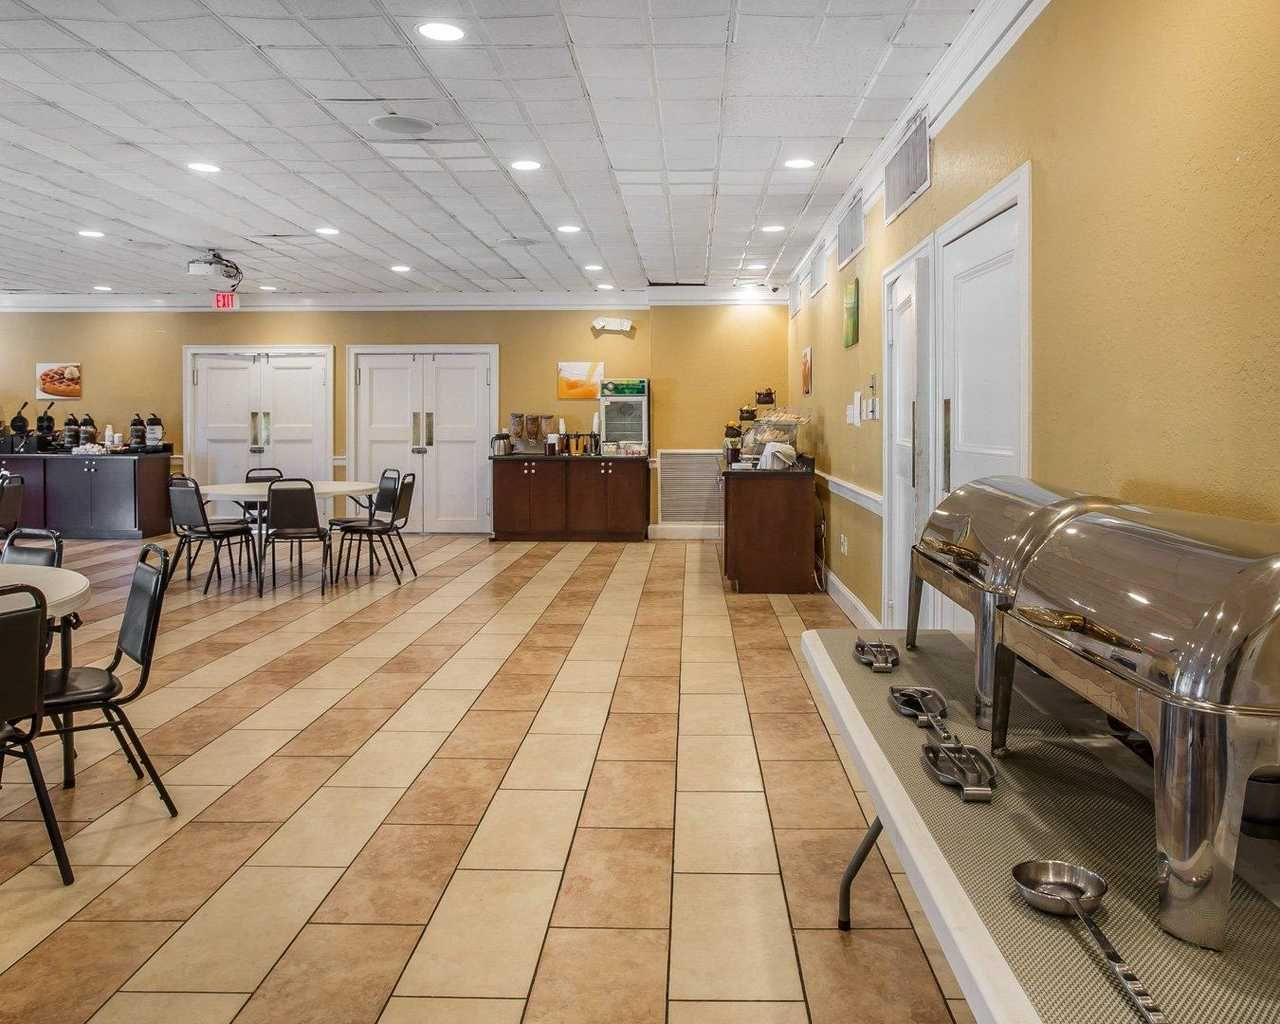 Pet Friendly Hotel In Richmond Hill Georgia Features Modern On